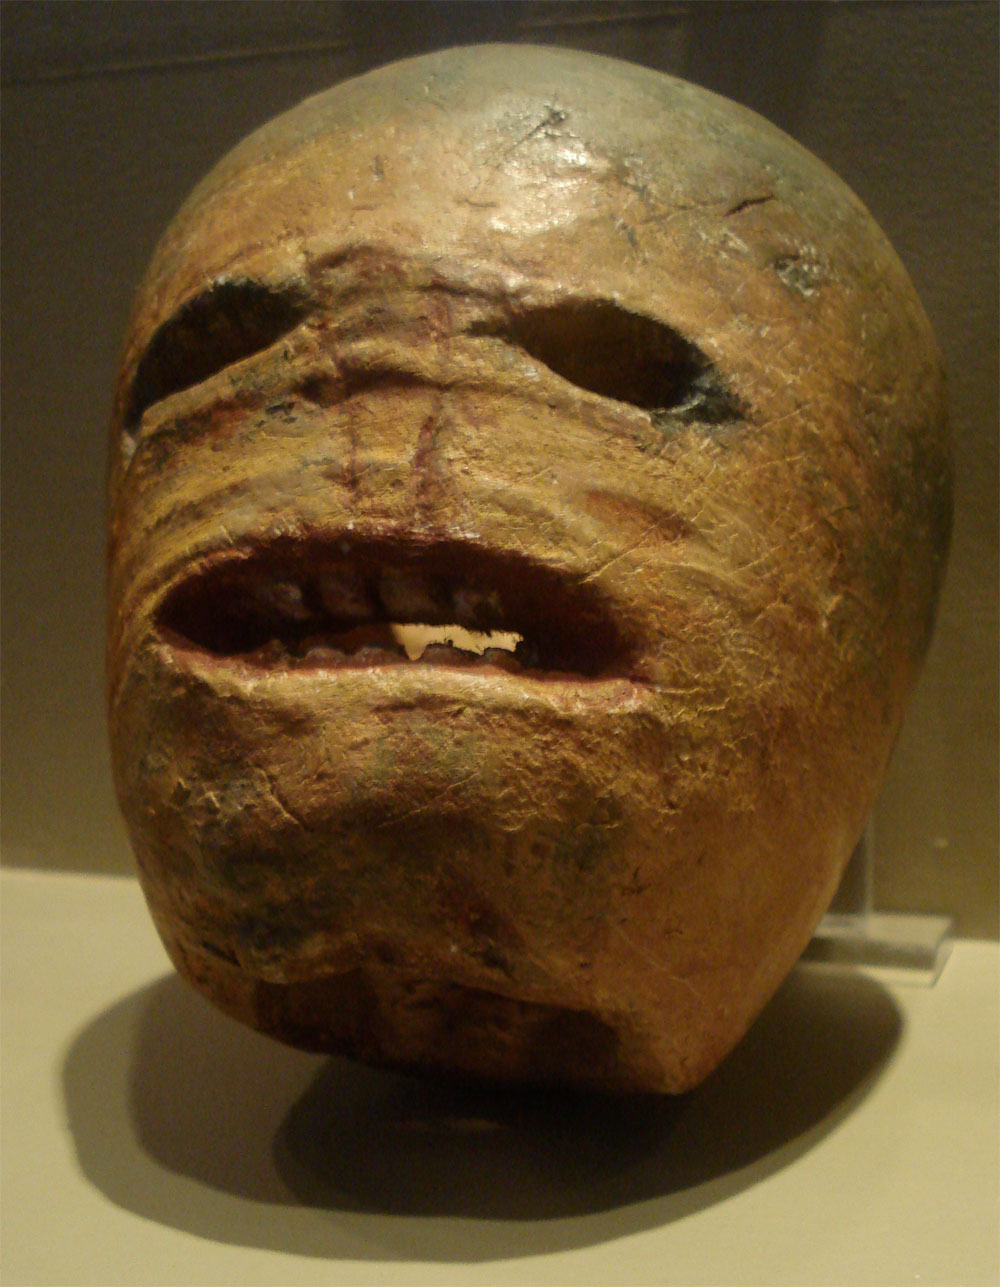 Traditional Irish Jack-o'-lantern.